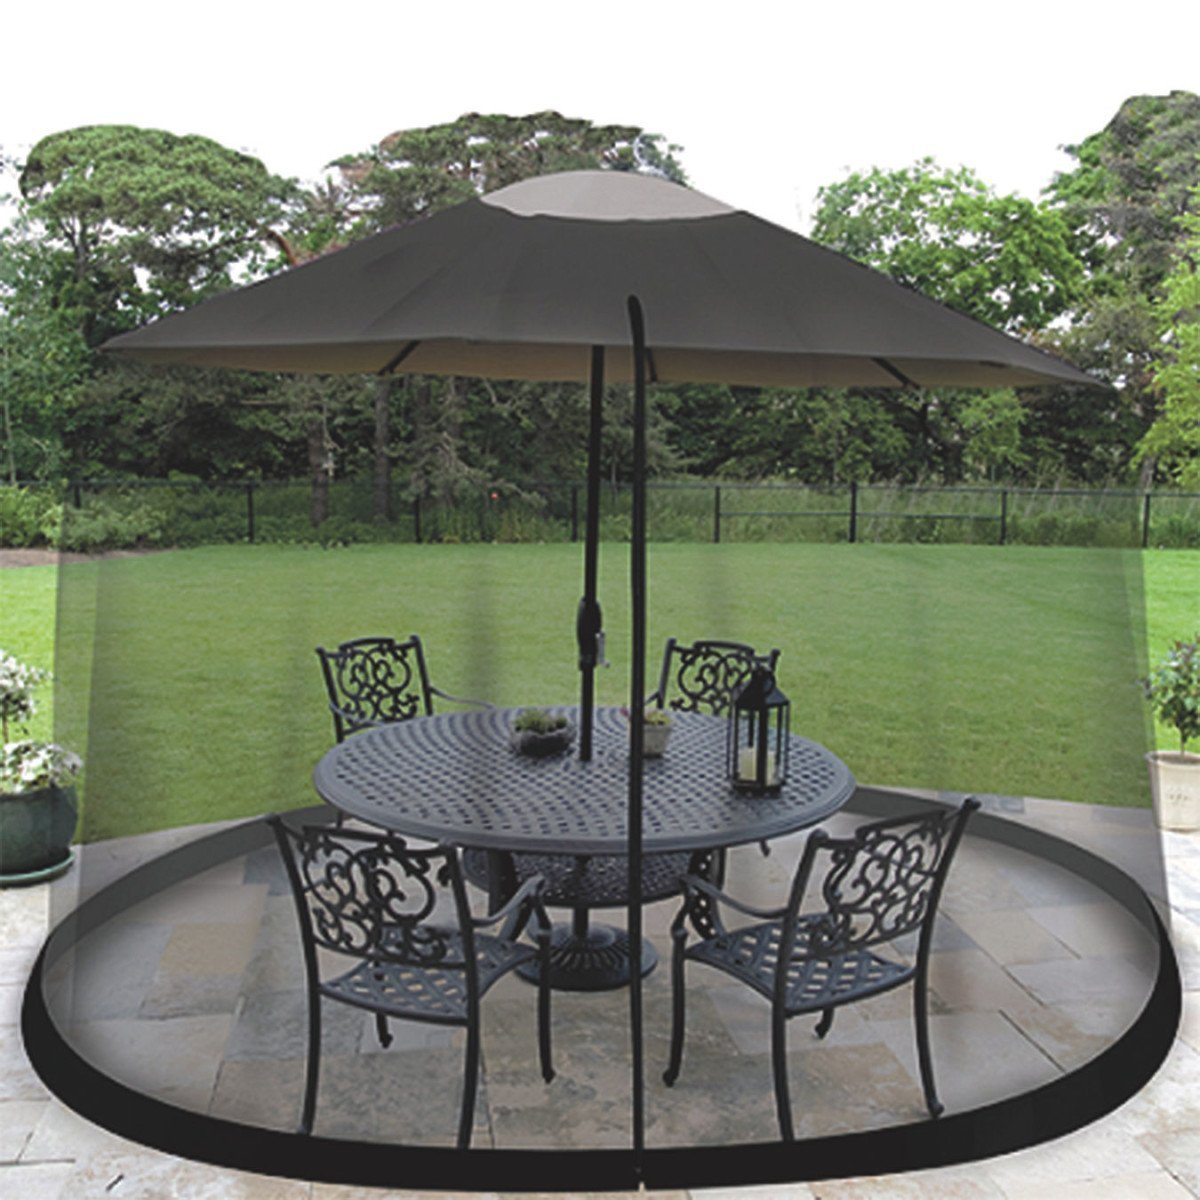 Etonnant Amazon.com: Ideaworks JB5678 Outdoor 9 Foot Umbrella Table Screen, Black:  Garden U0026 Outdoor